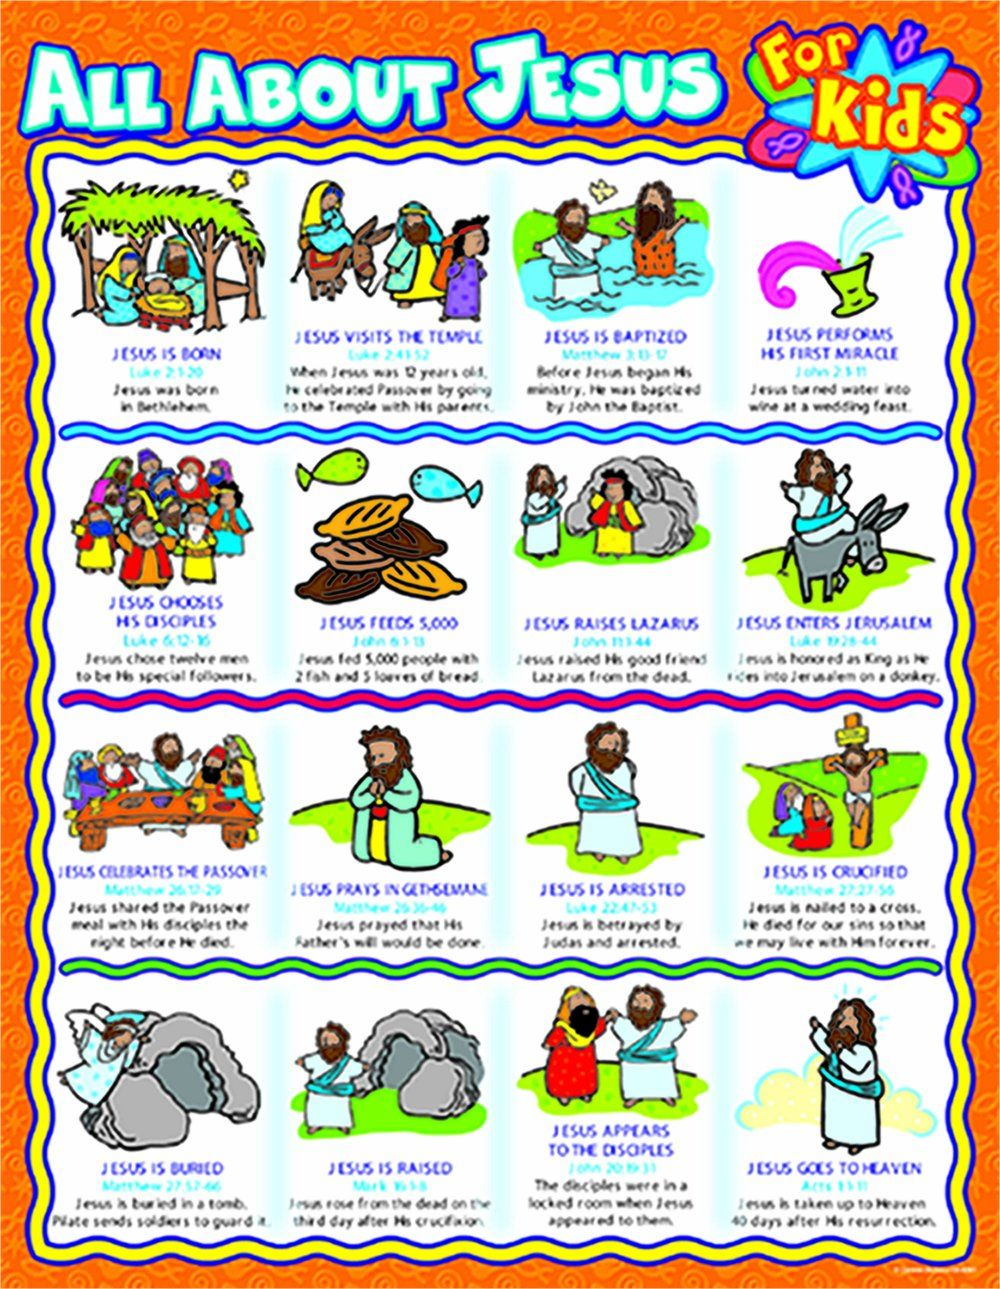 All about jesus for kids chart timeline of  life also bible rh pinterest